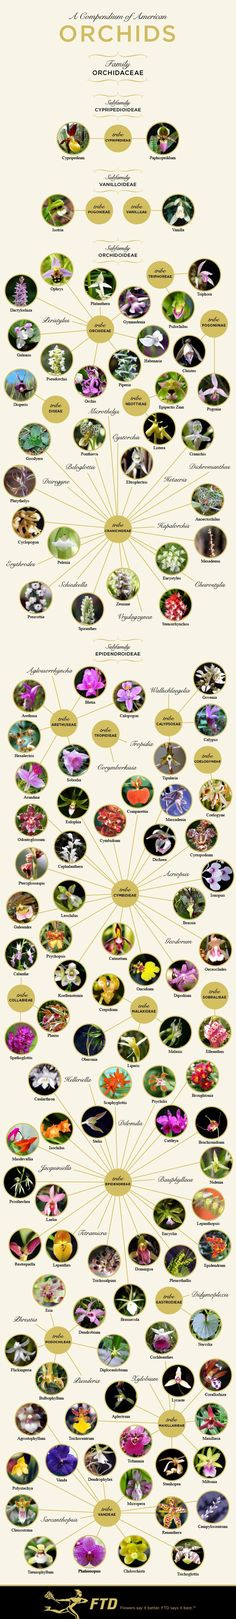 A Compendium of American Orchids - View Different Types Of Orchids